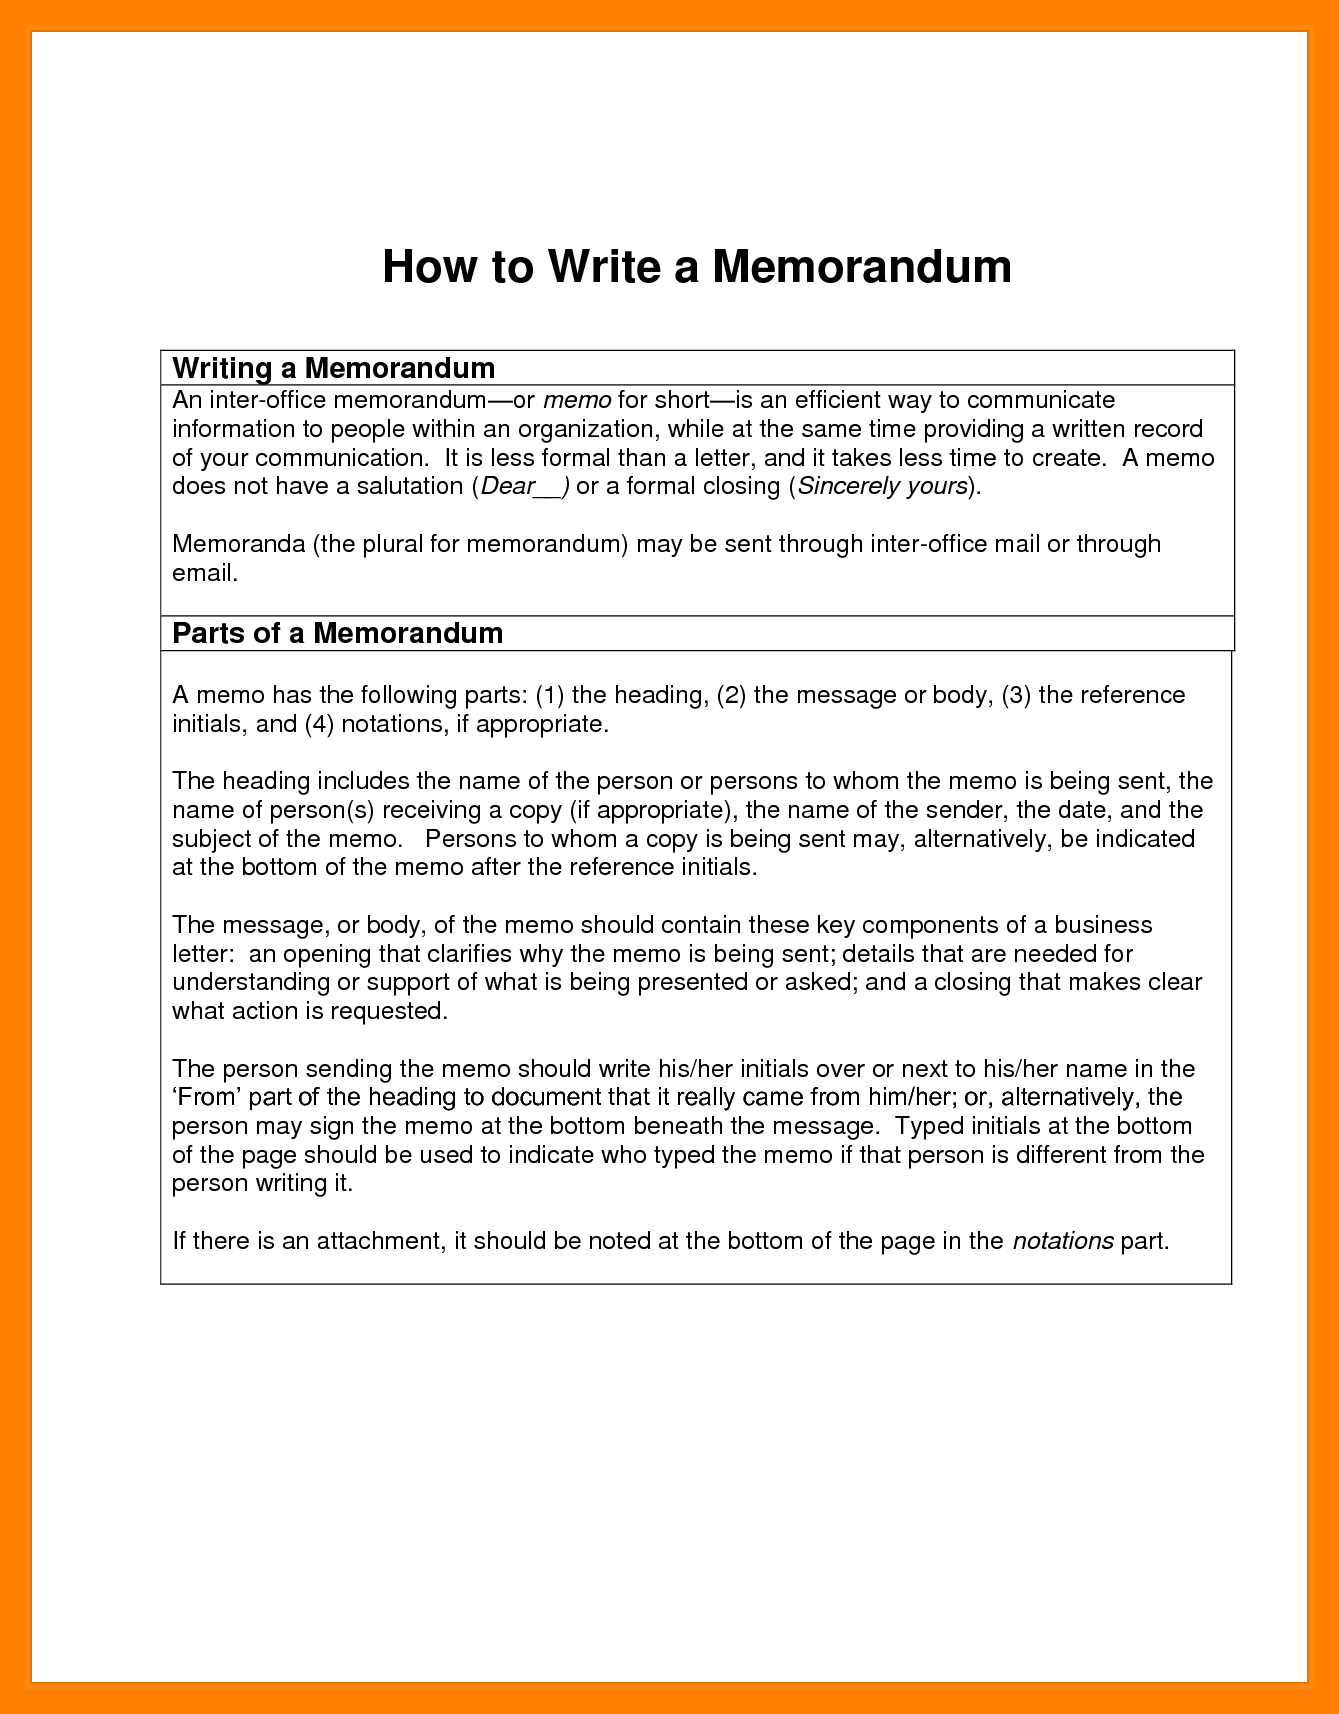 parts memorandum resumed job write memo how